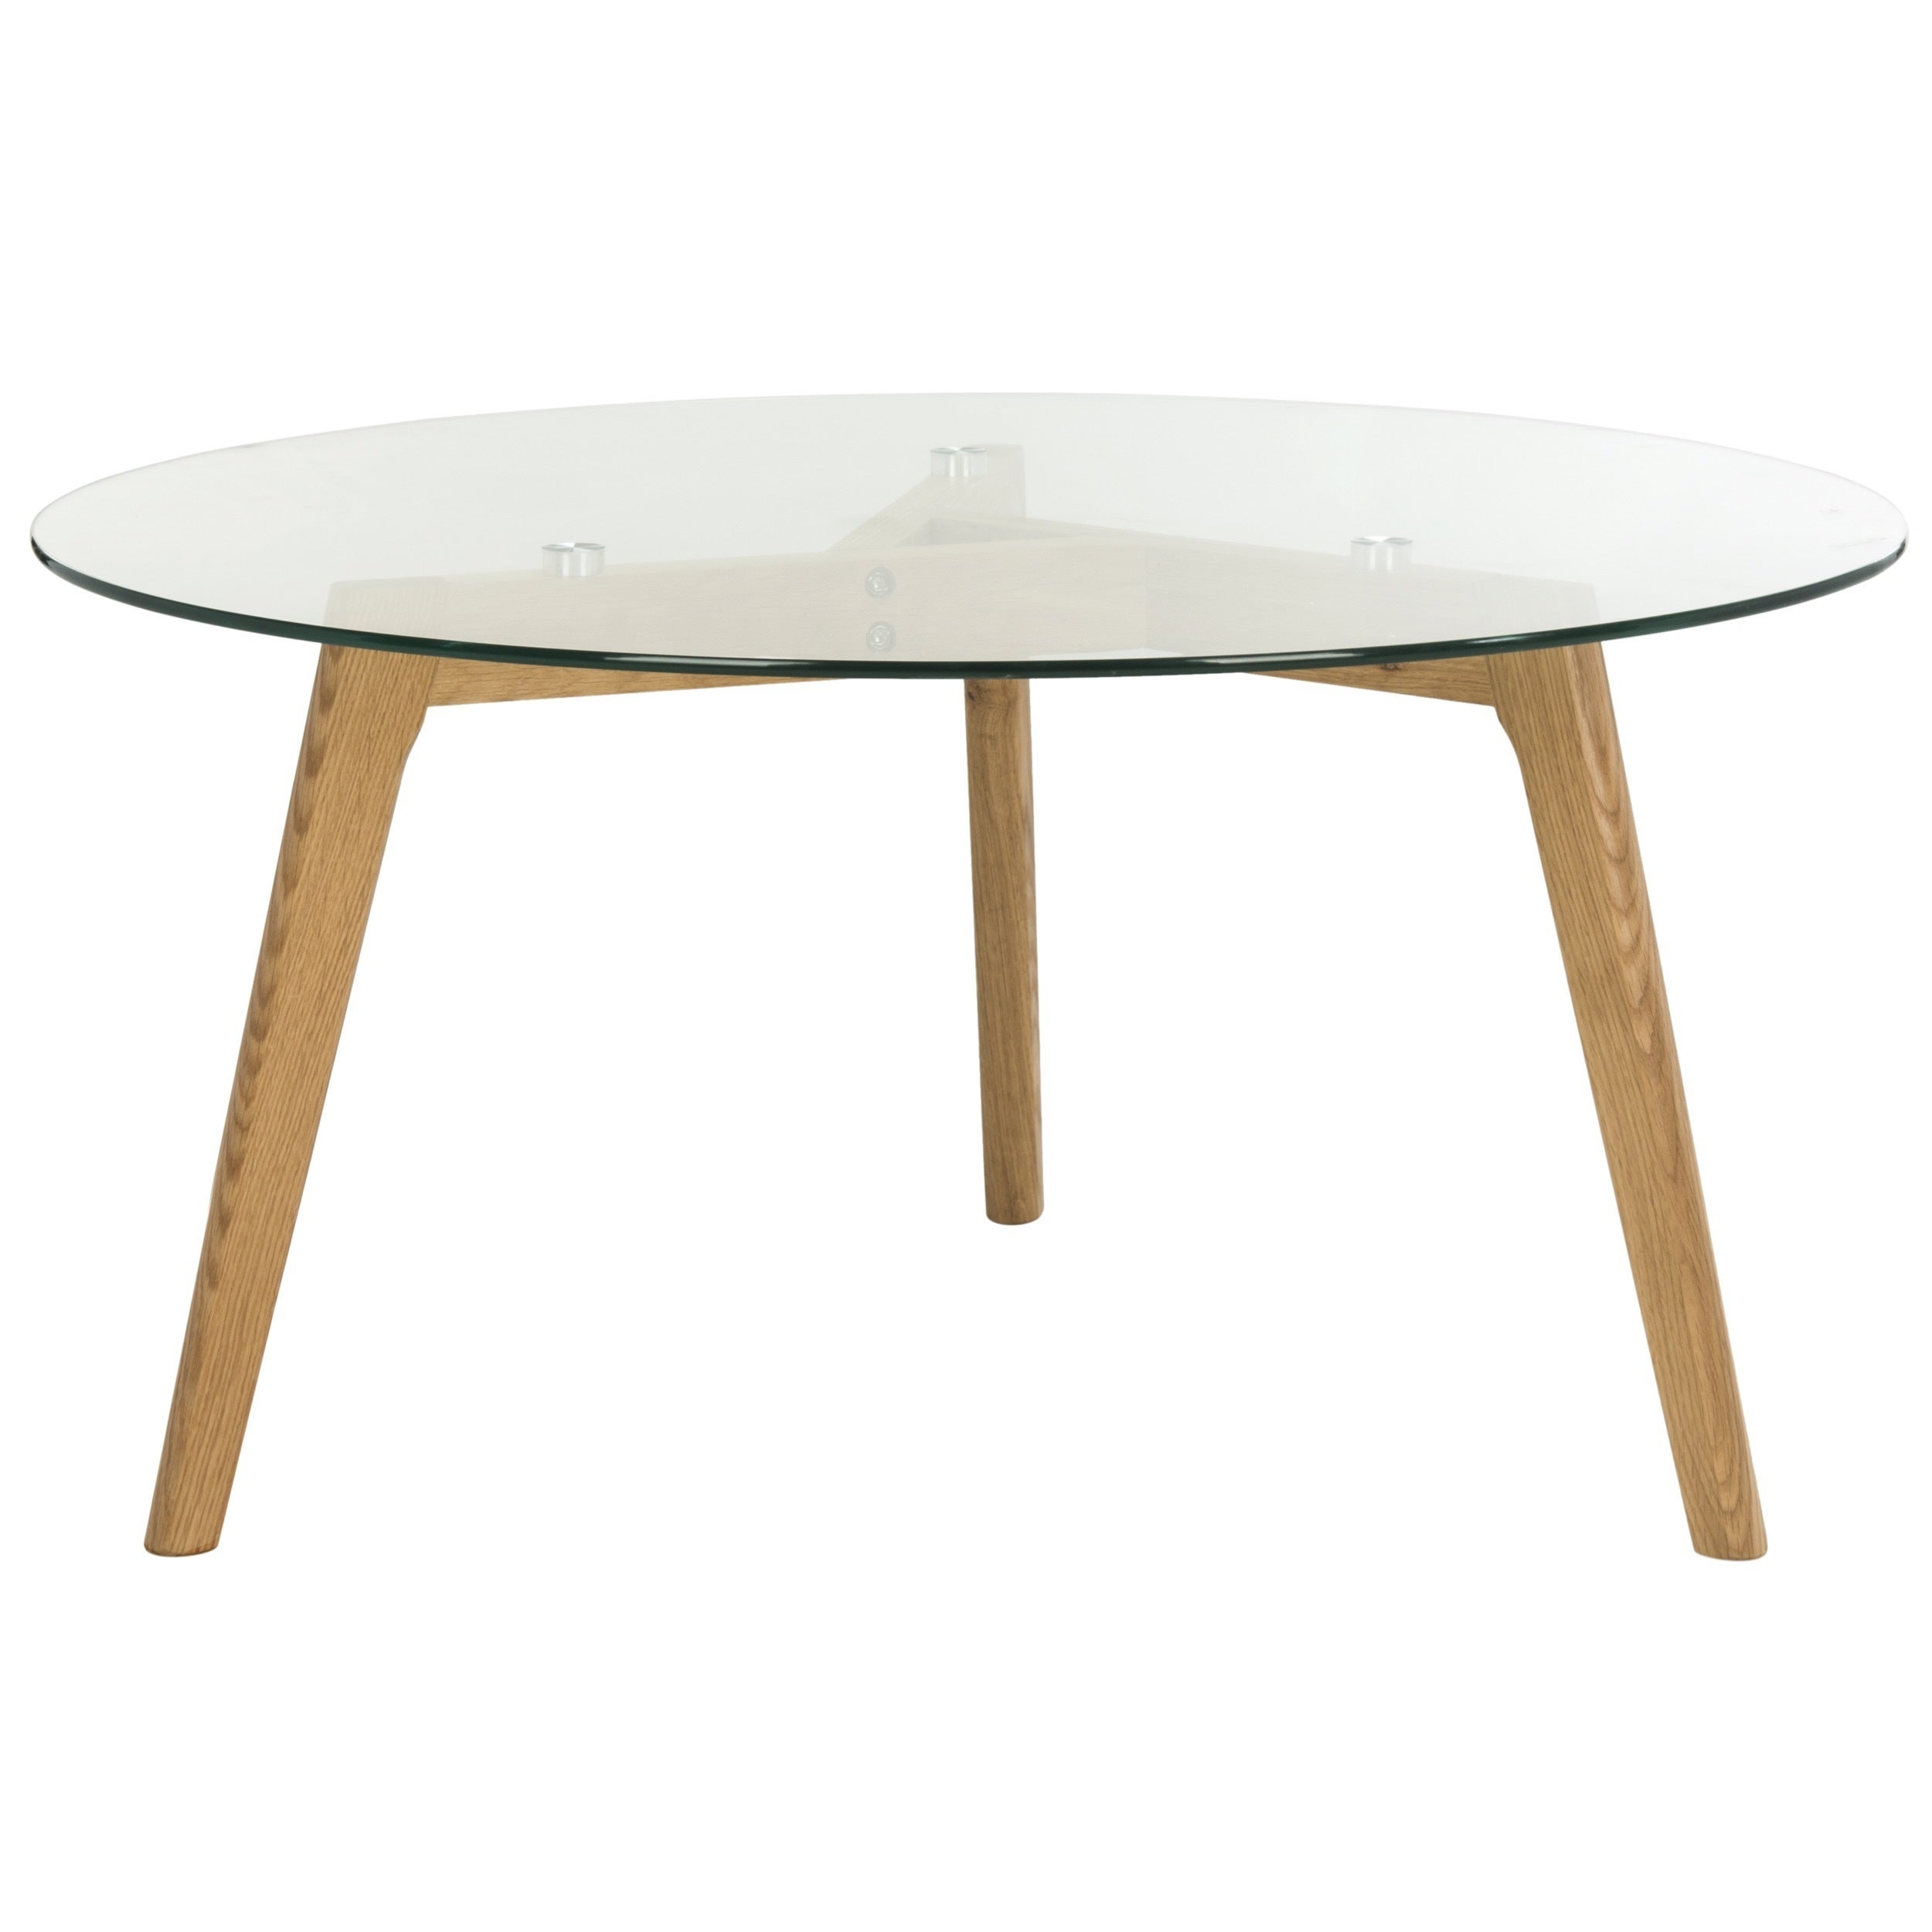 Shop Safavieh MidCentury Marjoram Round Glass Coffee Table On - Mid century wood and glass coffee table